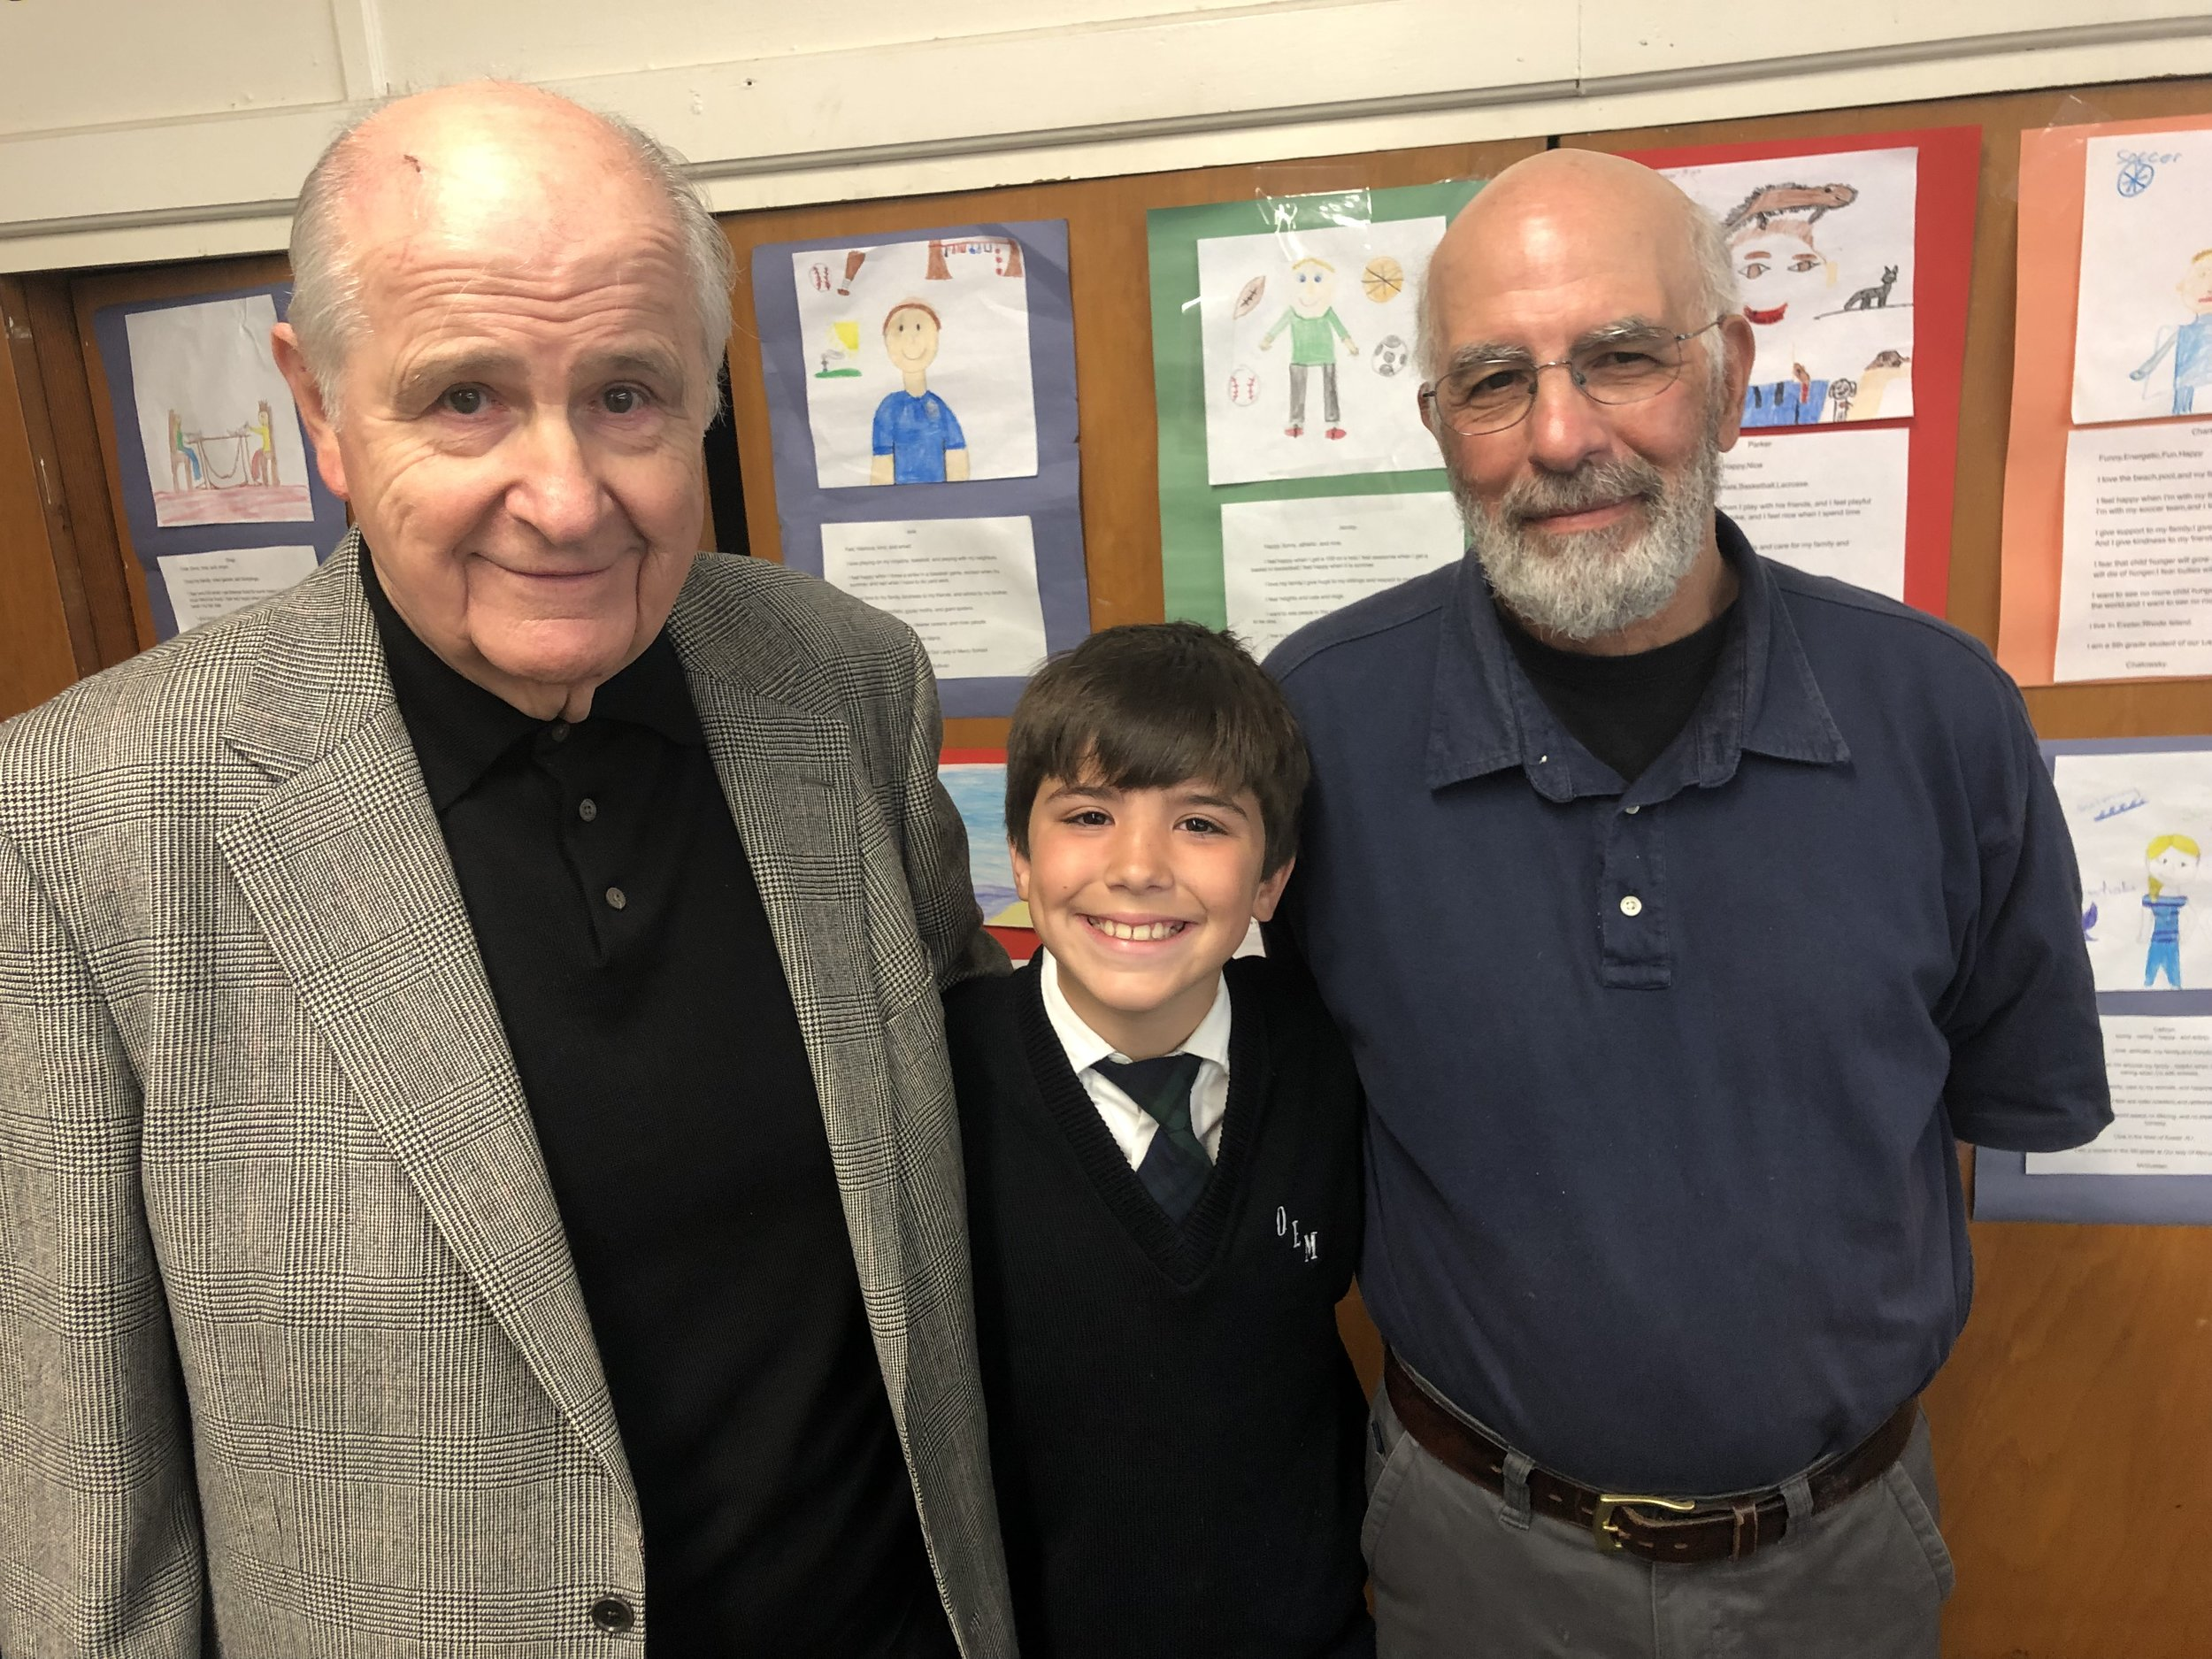 OLM School Fifth Grader Jeremiah Murphy (Warwick) welcomed grandfathers John Murphy and Rodney Sorrentino to the Fifth Annual OLM School Grandparents Day celebration on Thursday, May 30.